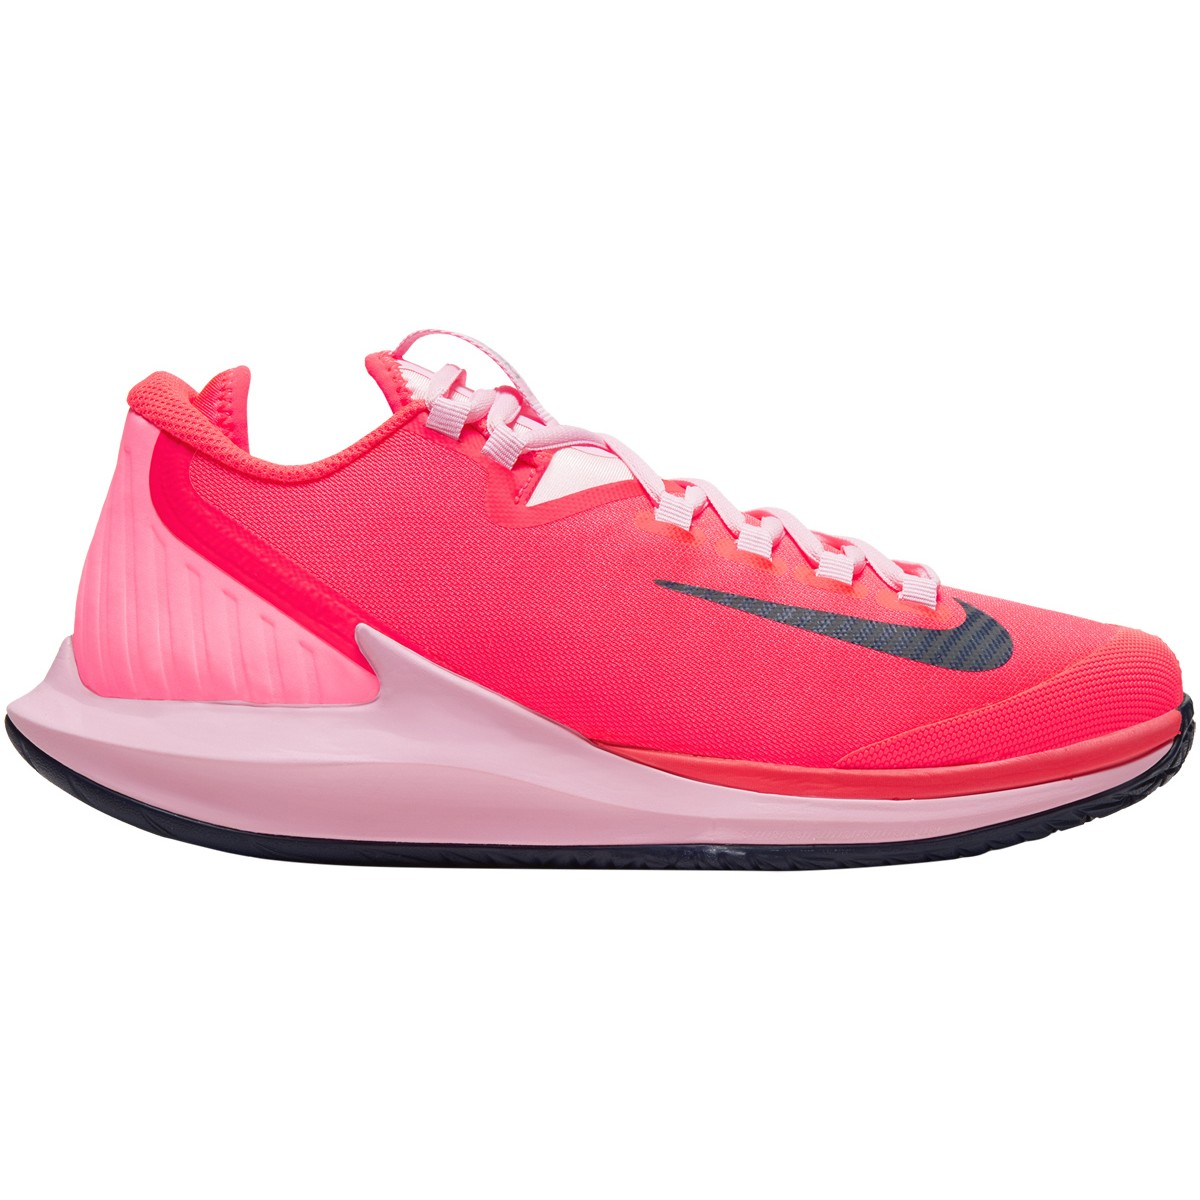 Chaussures Nike Femme Court Air Zoom Zéro Toutes Surfaces